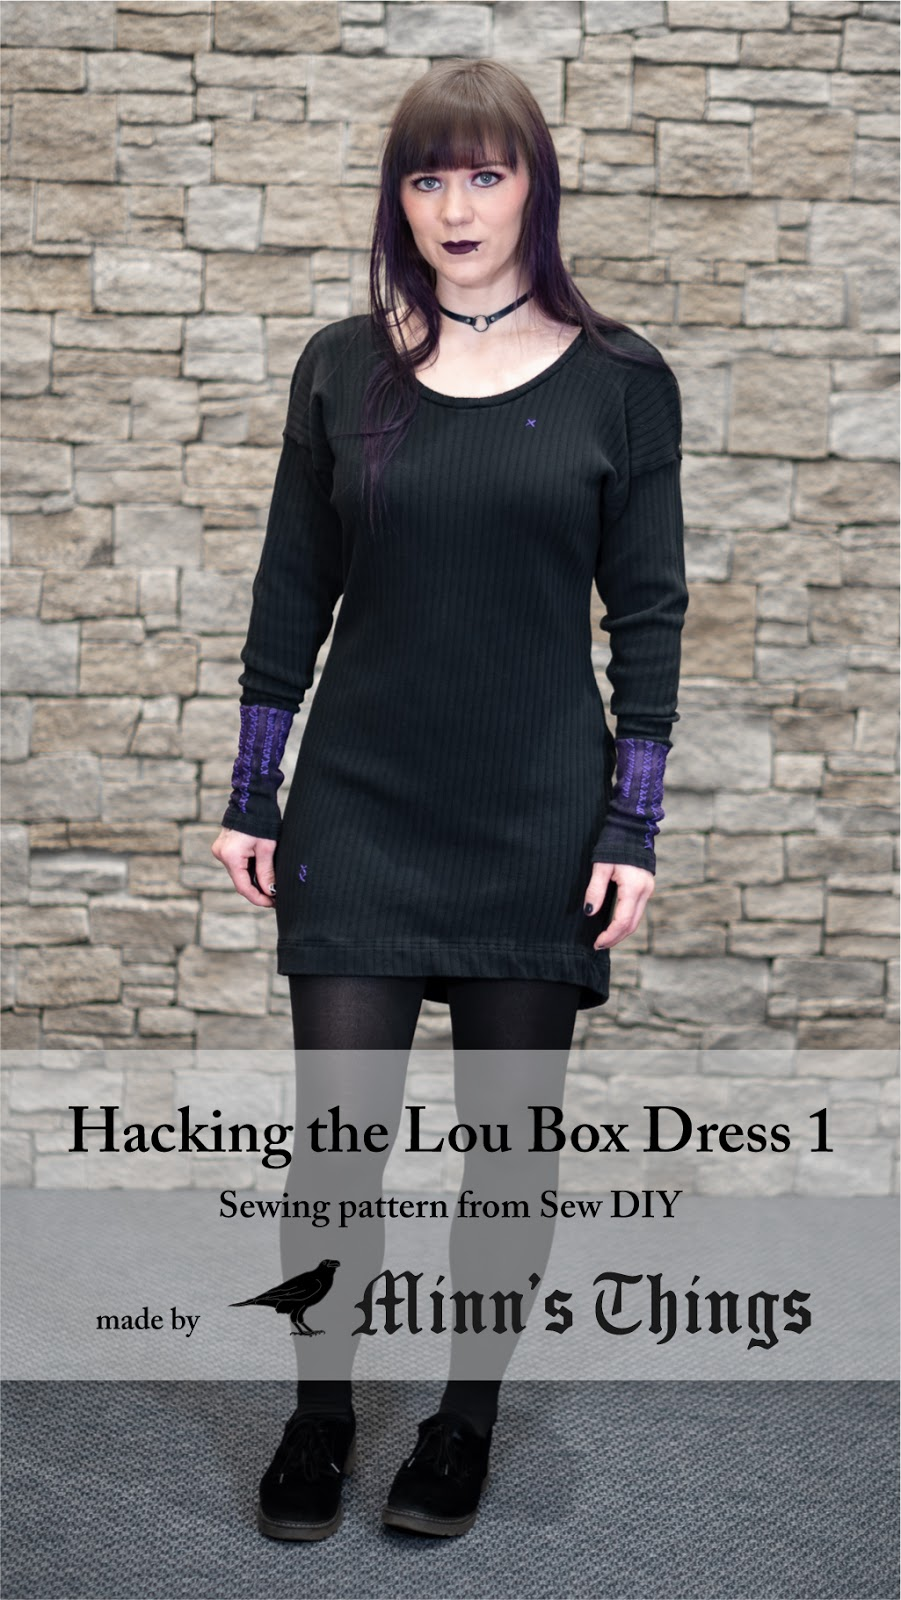 sew diy lou box dress 1 sewing pattern hacks modified hacking minn's things pinterest